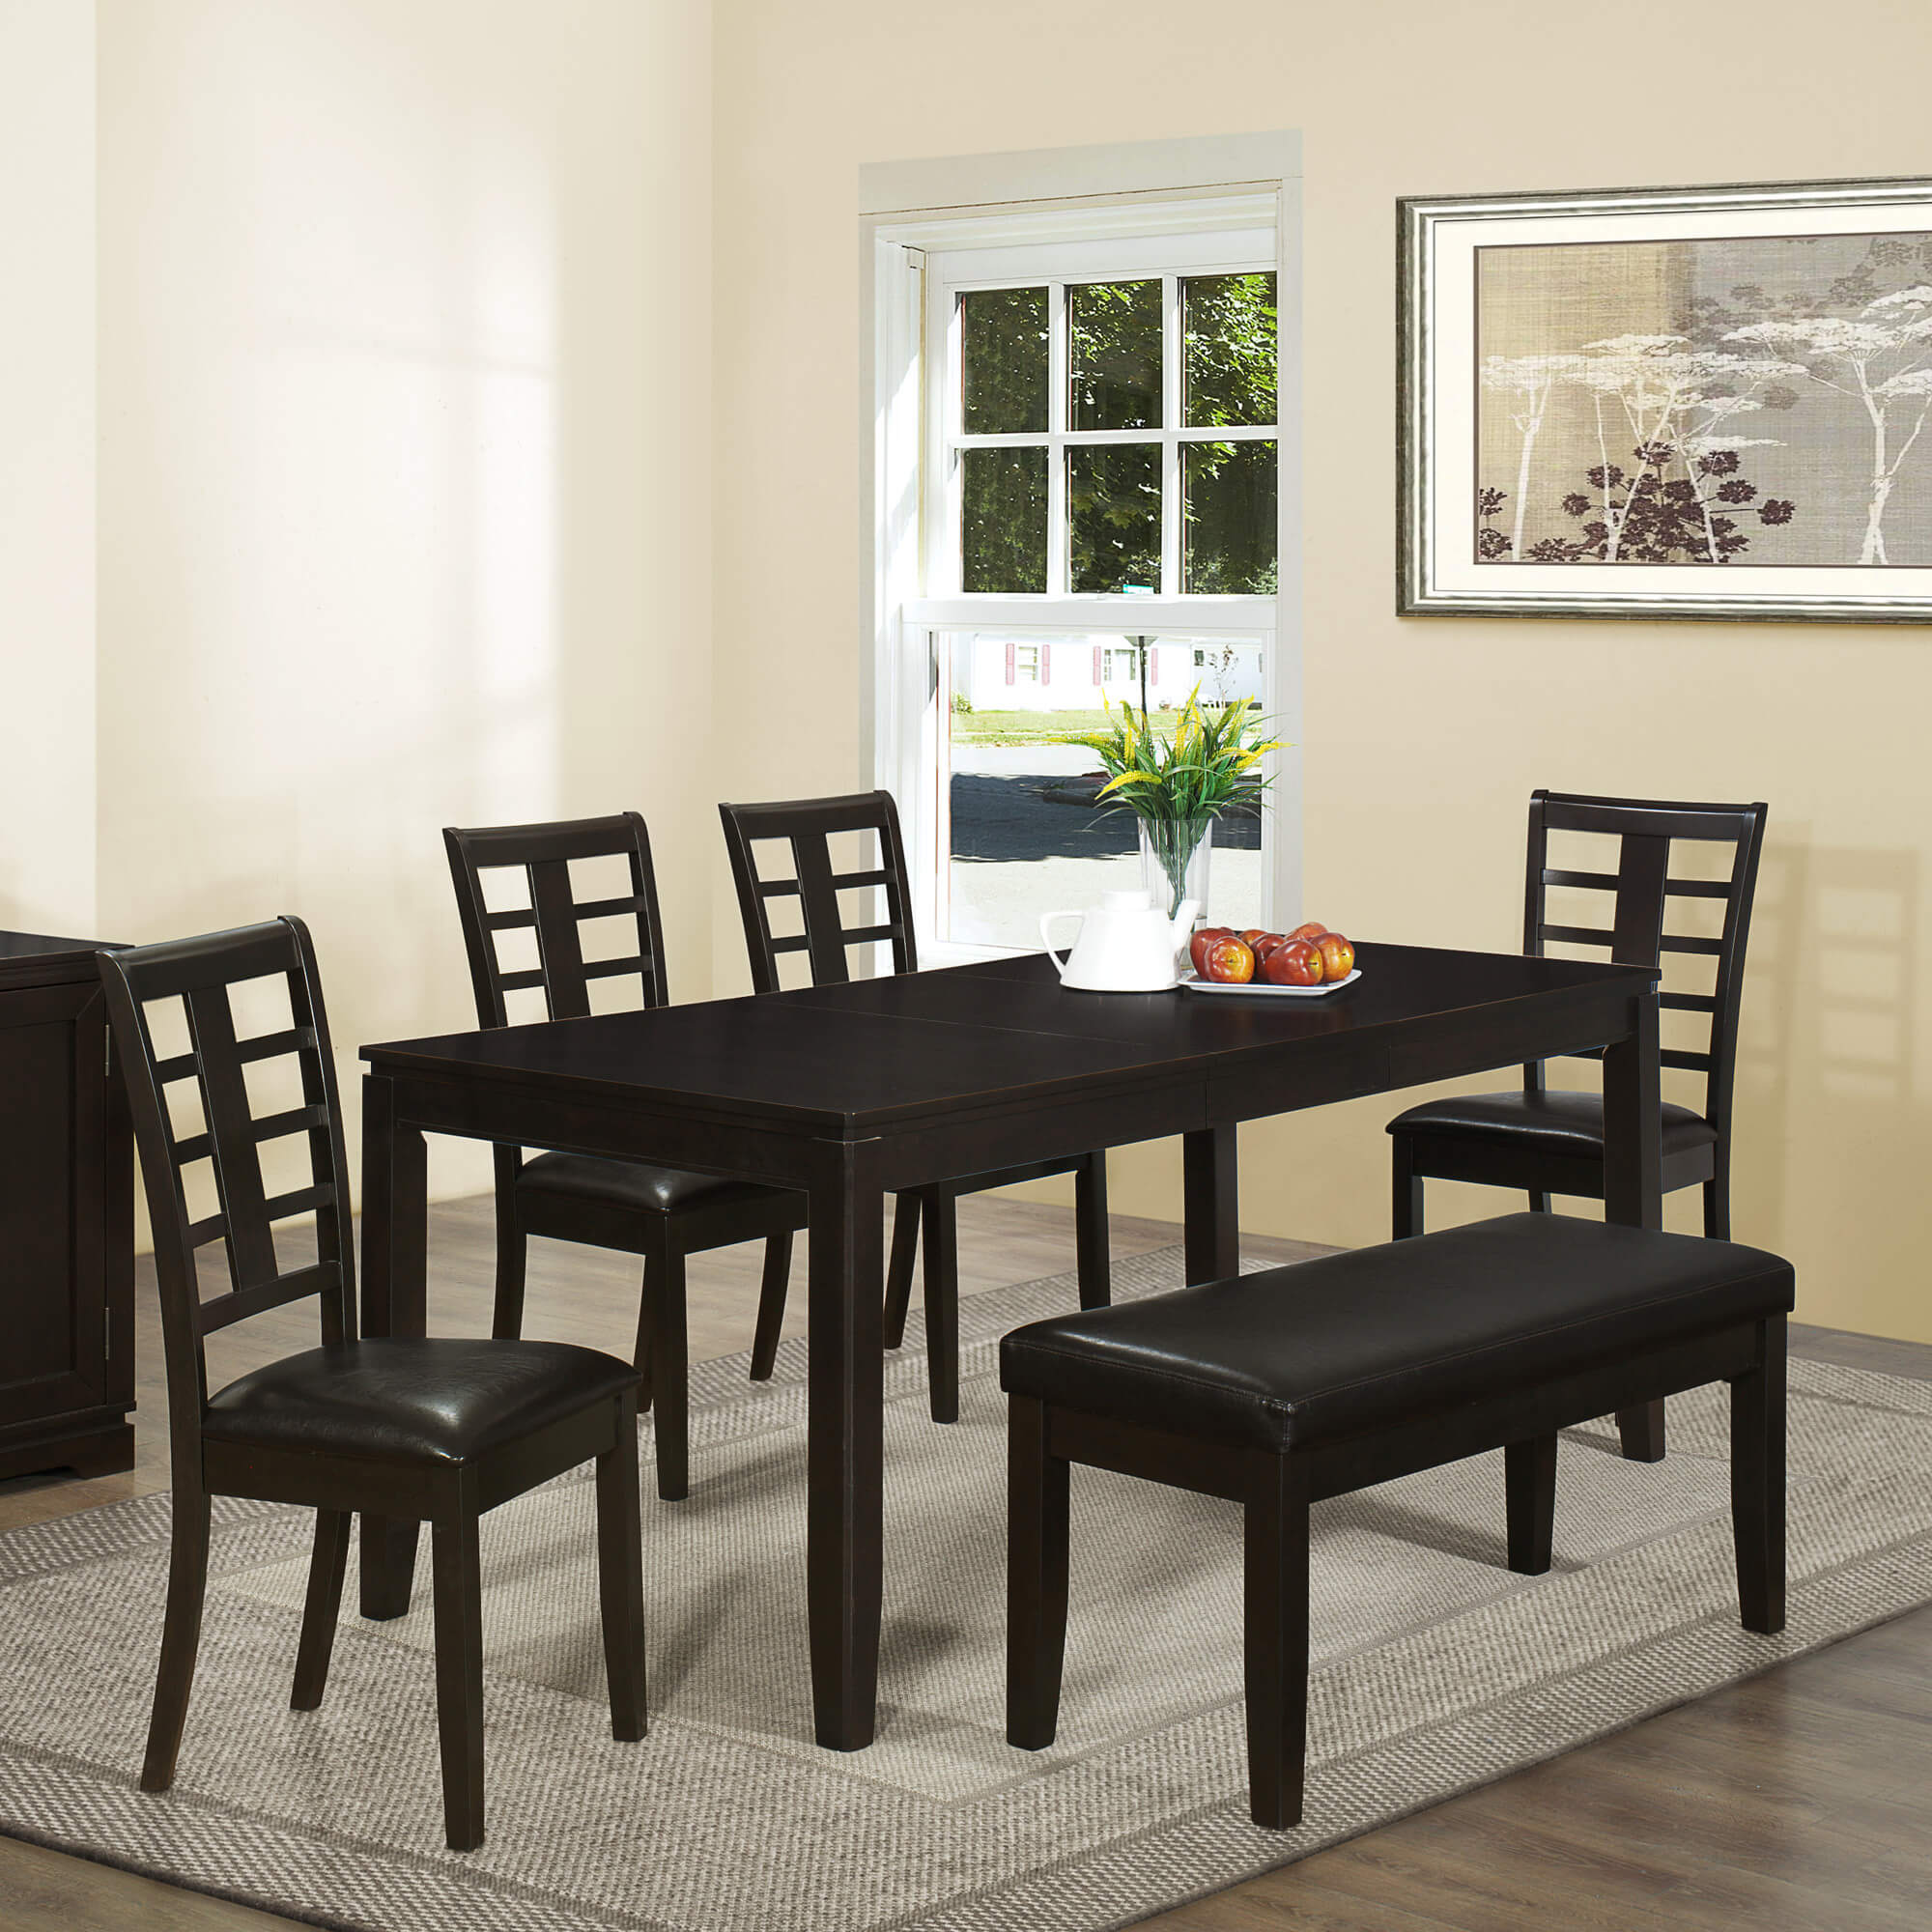 Contemporary Asian Inspired Dining Set With Bench Is A Good Size Being Able To Accommodate